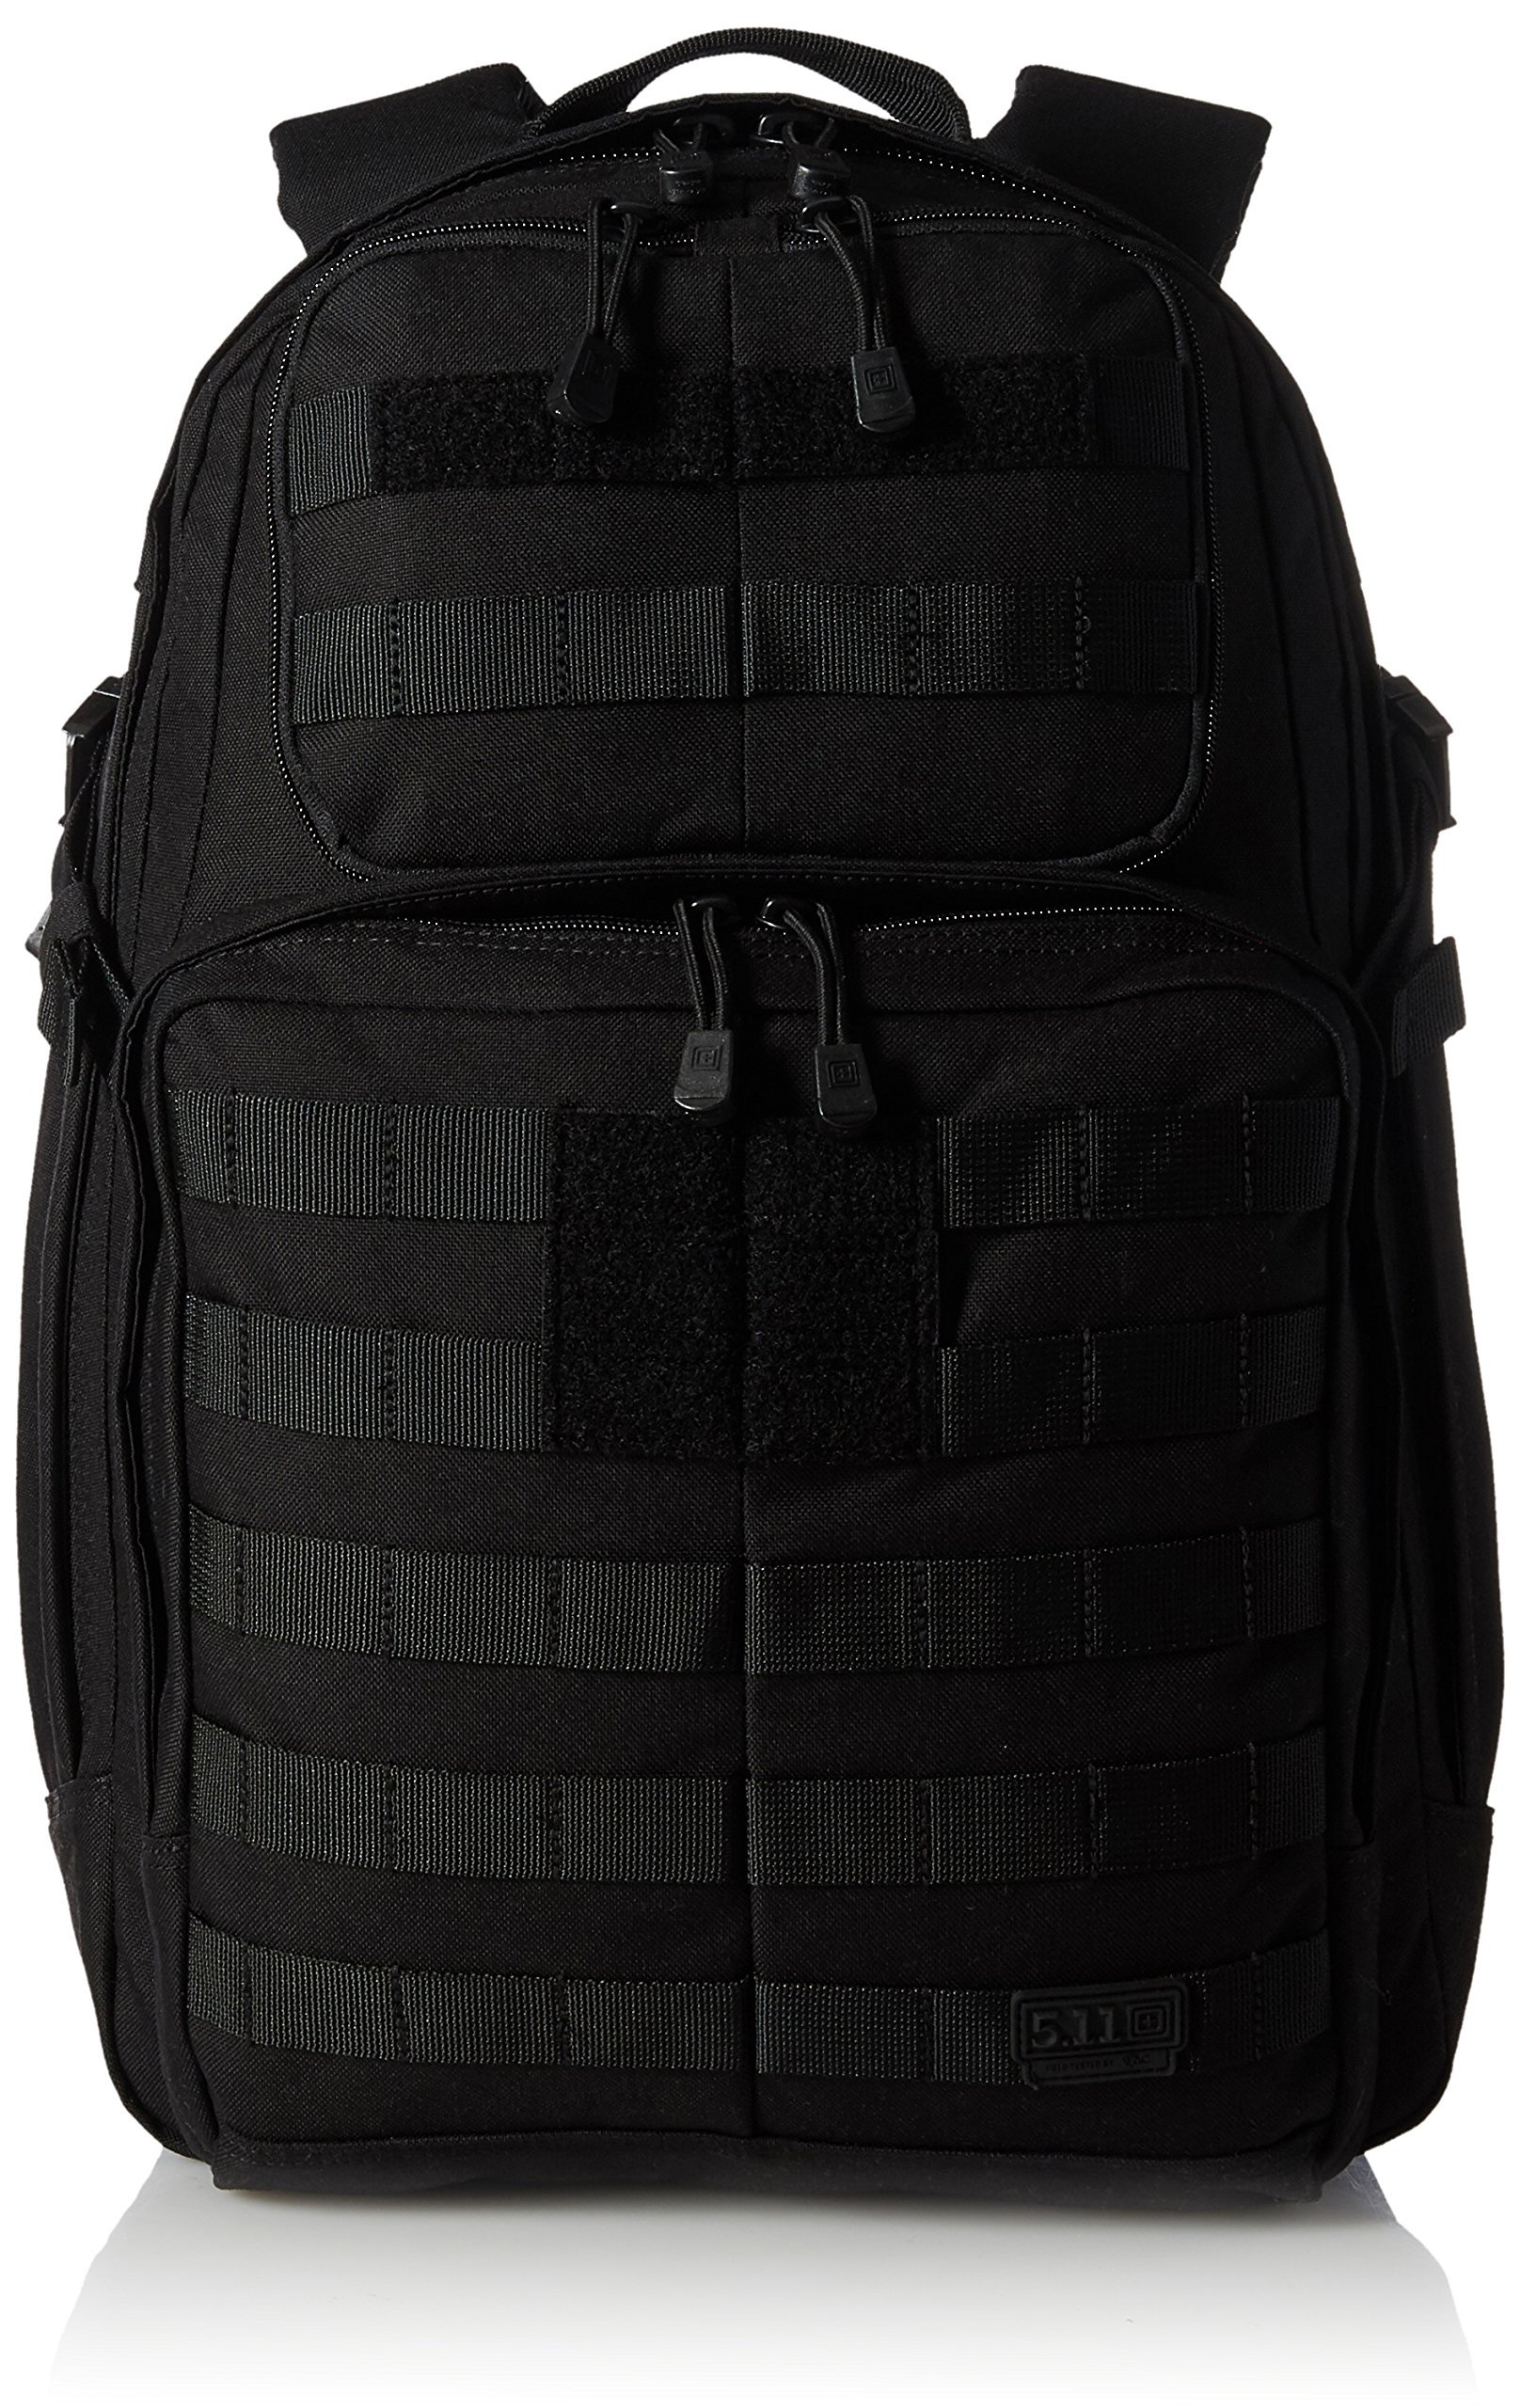 5.11 Tactical RUSH 24 Backpack by 5.11 Outdoor